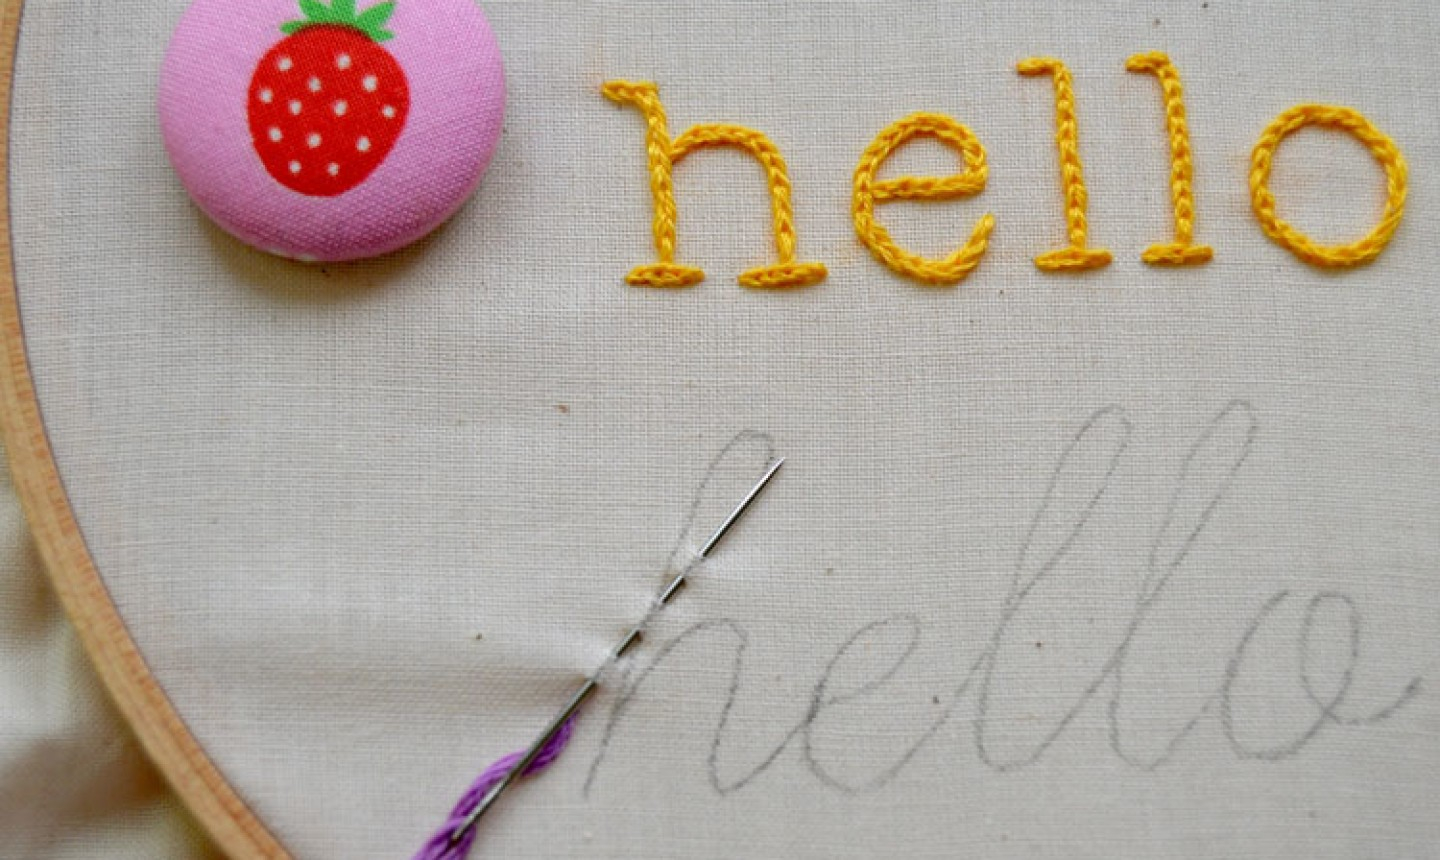 How To Make Embroidery Patterns 4 Surprisingly Easy Stitches For Perfect Hand Embroidered Letters